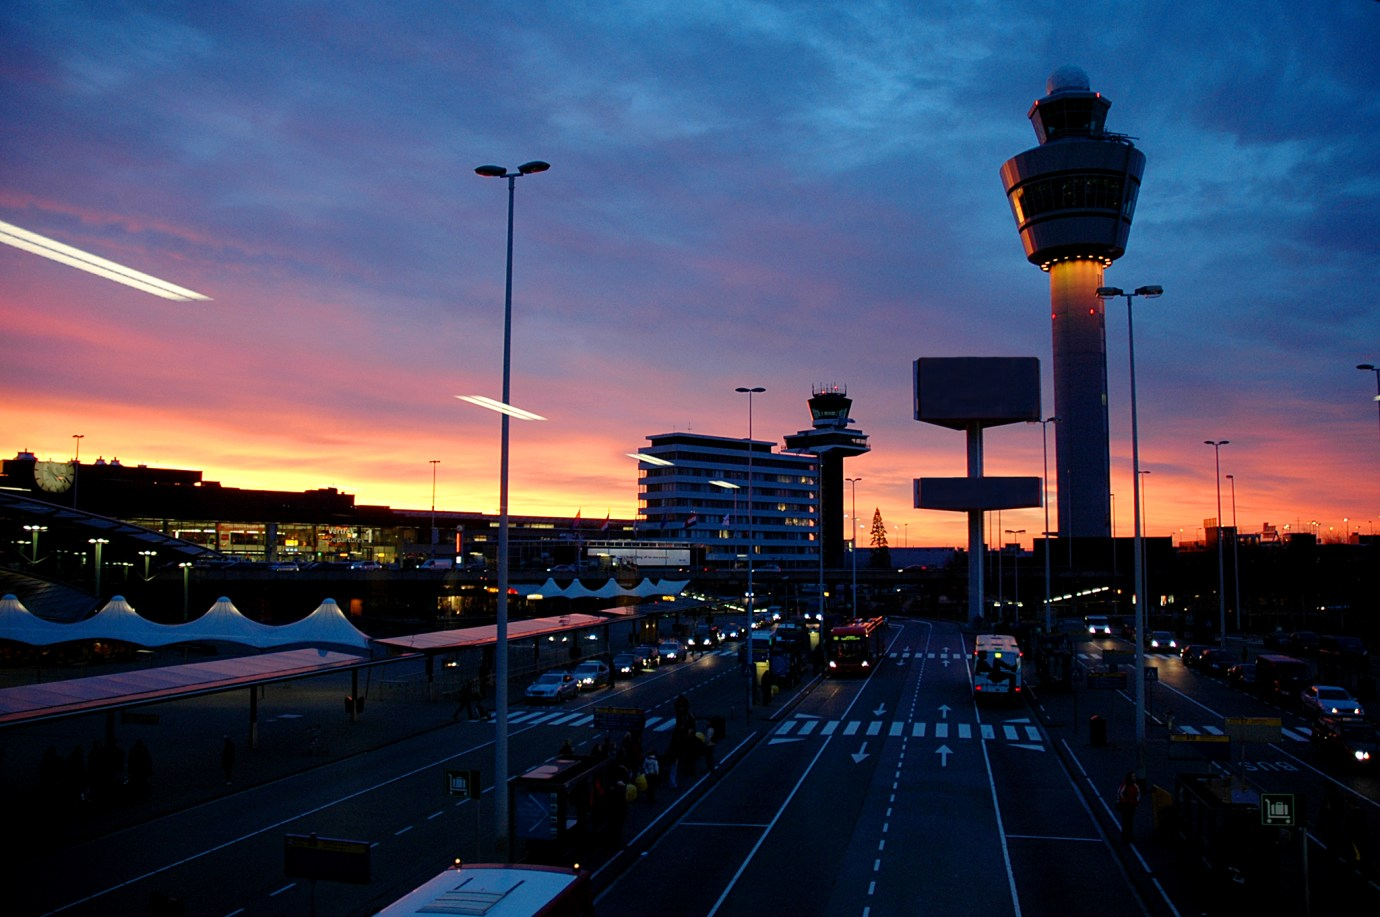 schiphol airport by night